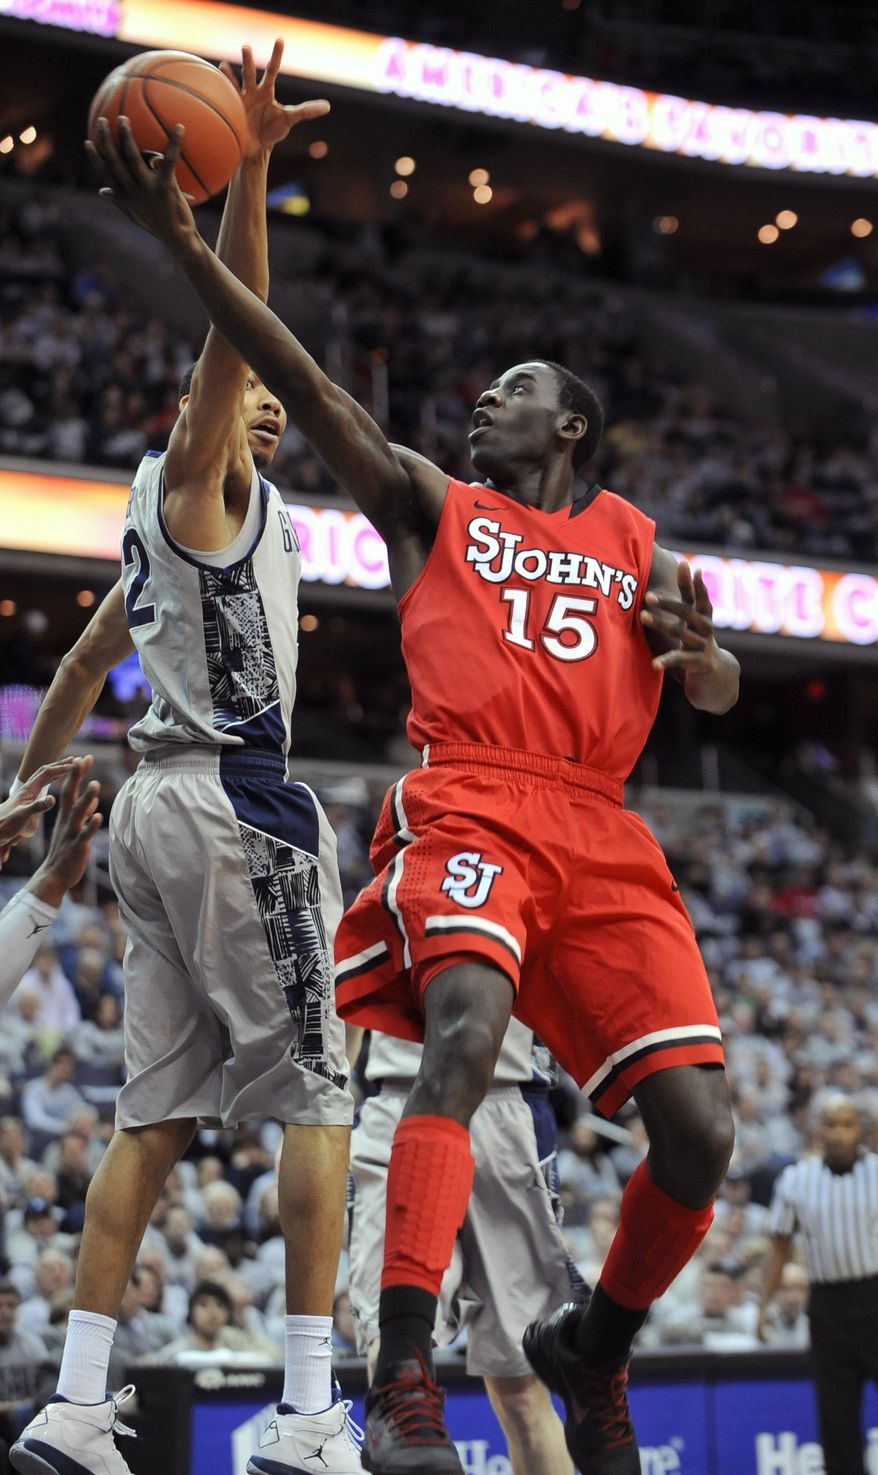 St. John's forward Sir'Dominic Pointer (15) goes up for a basket under pressure from Georgetown forward Otto Porter during first half of their NCAA college basketball game, Saturday, Feb. 2, 2013, in Washington. (AP Photo/Richard Lipski)